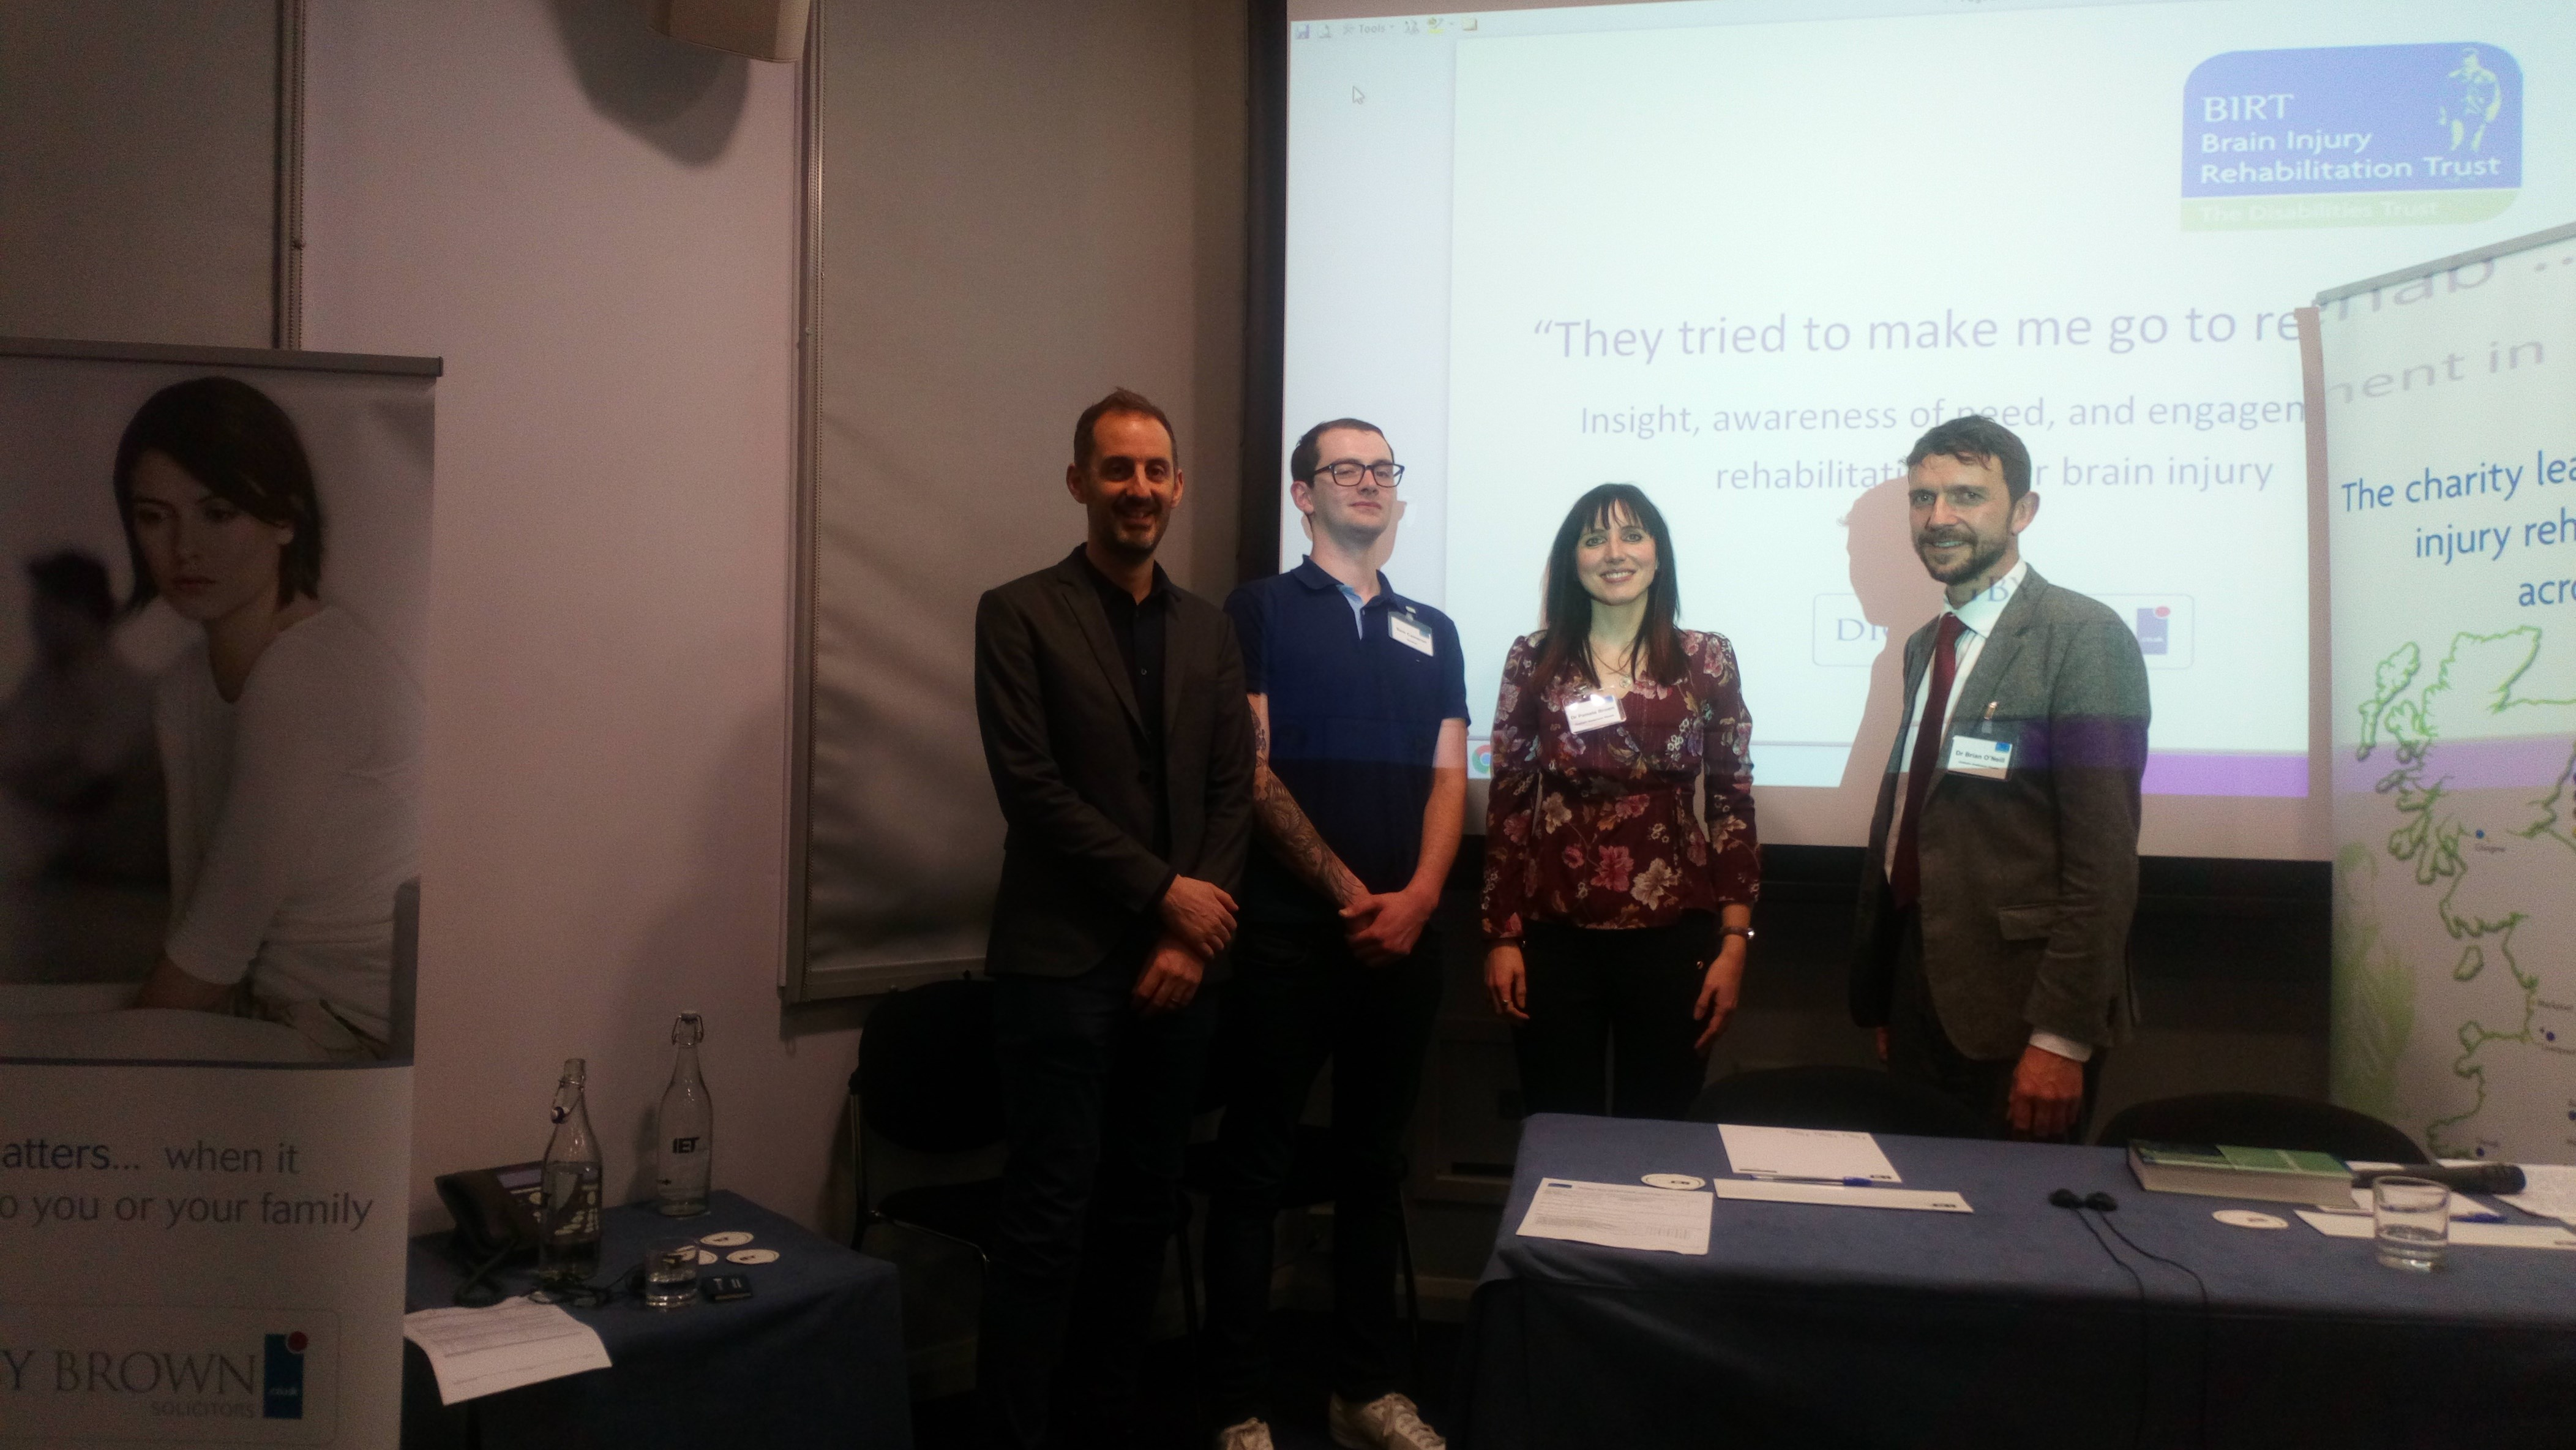 Dr Paul Dockree, Dr Pamela Brown, Sam Cameron and Dr Brian O'Neill at the BIRT seminar in Glasgow